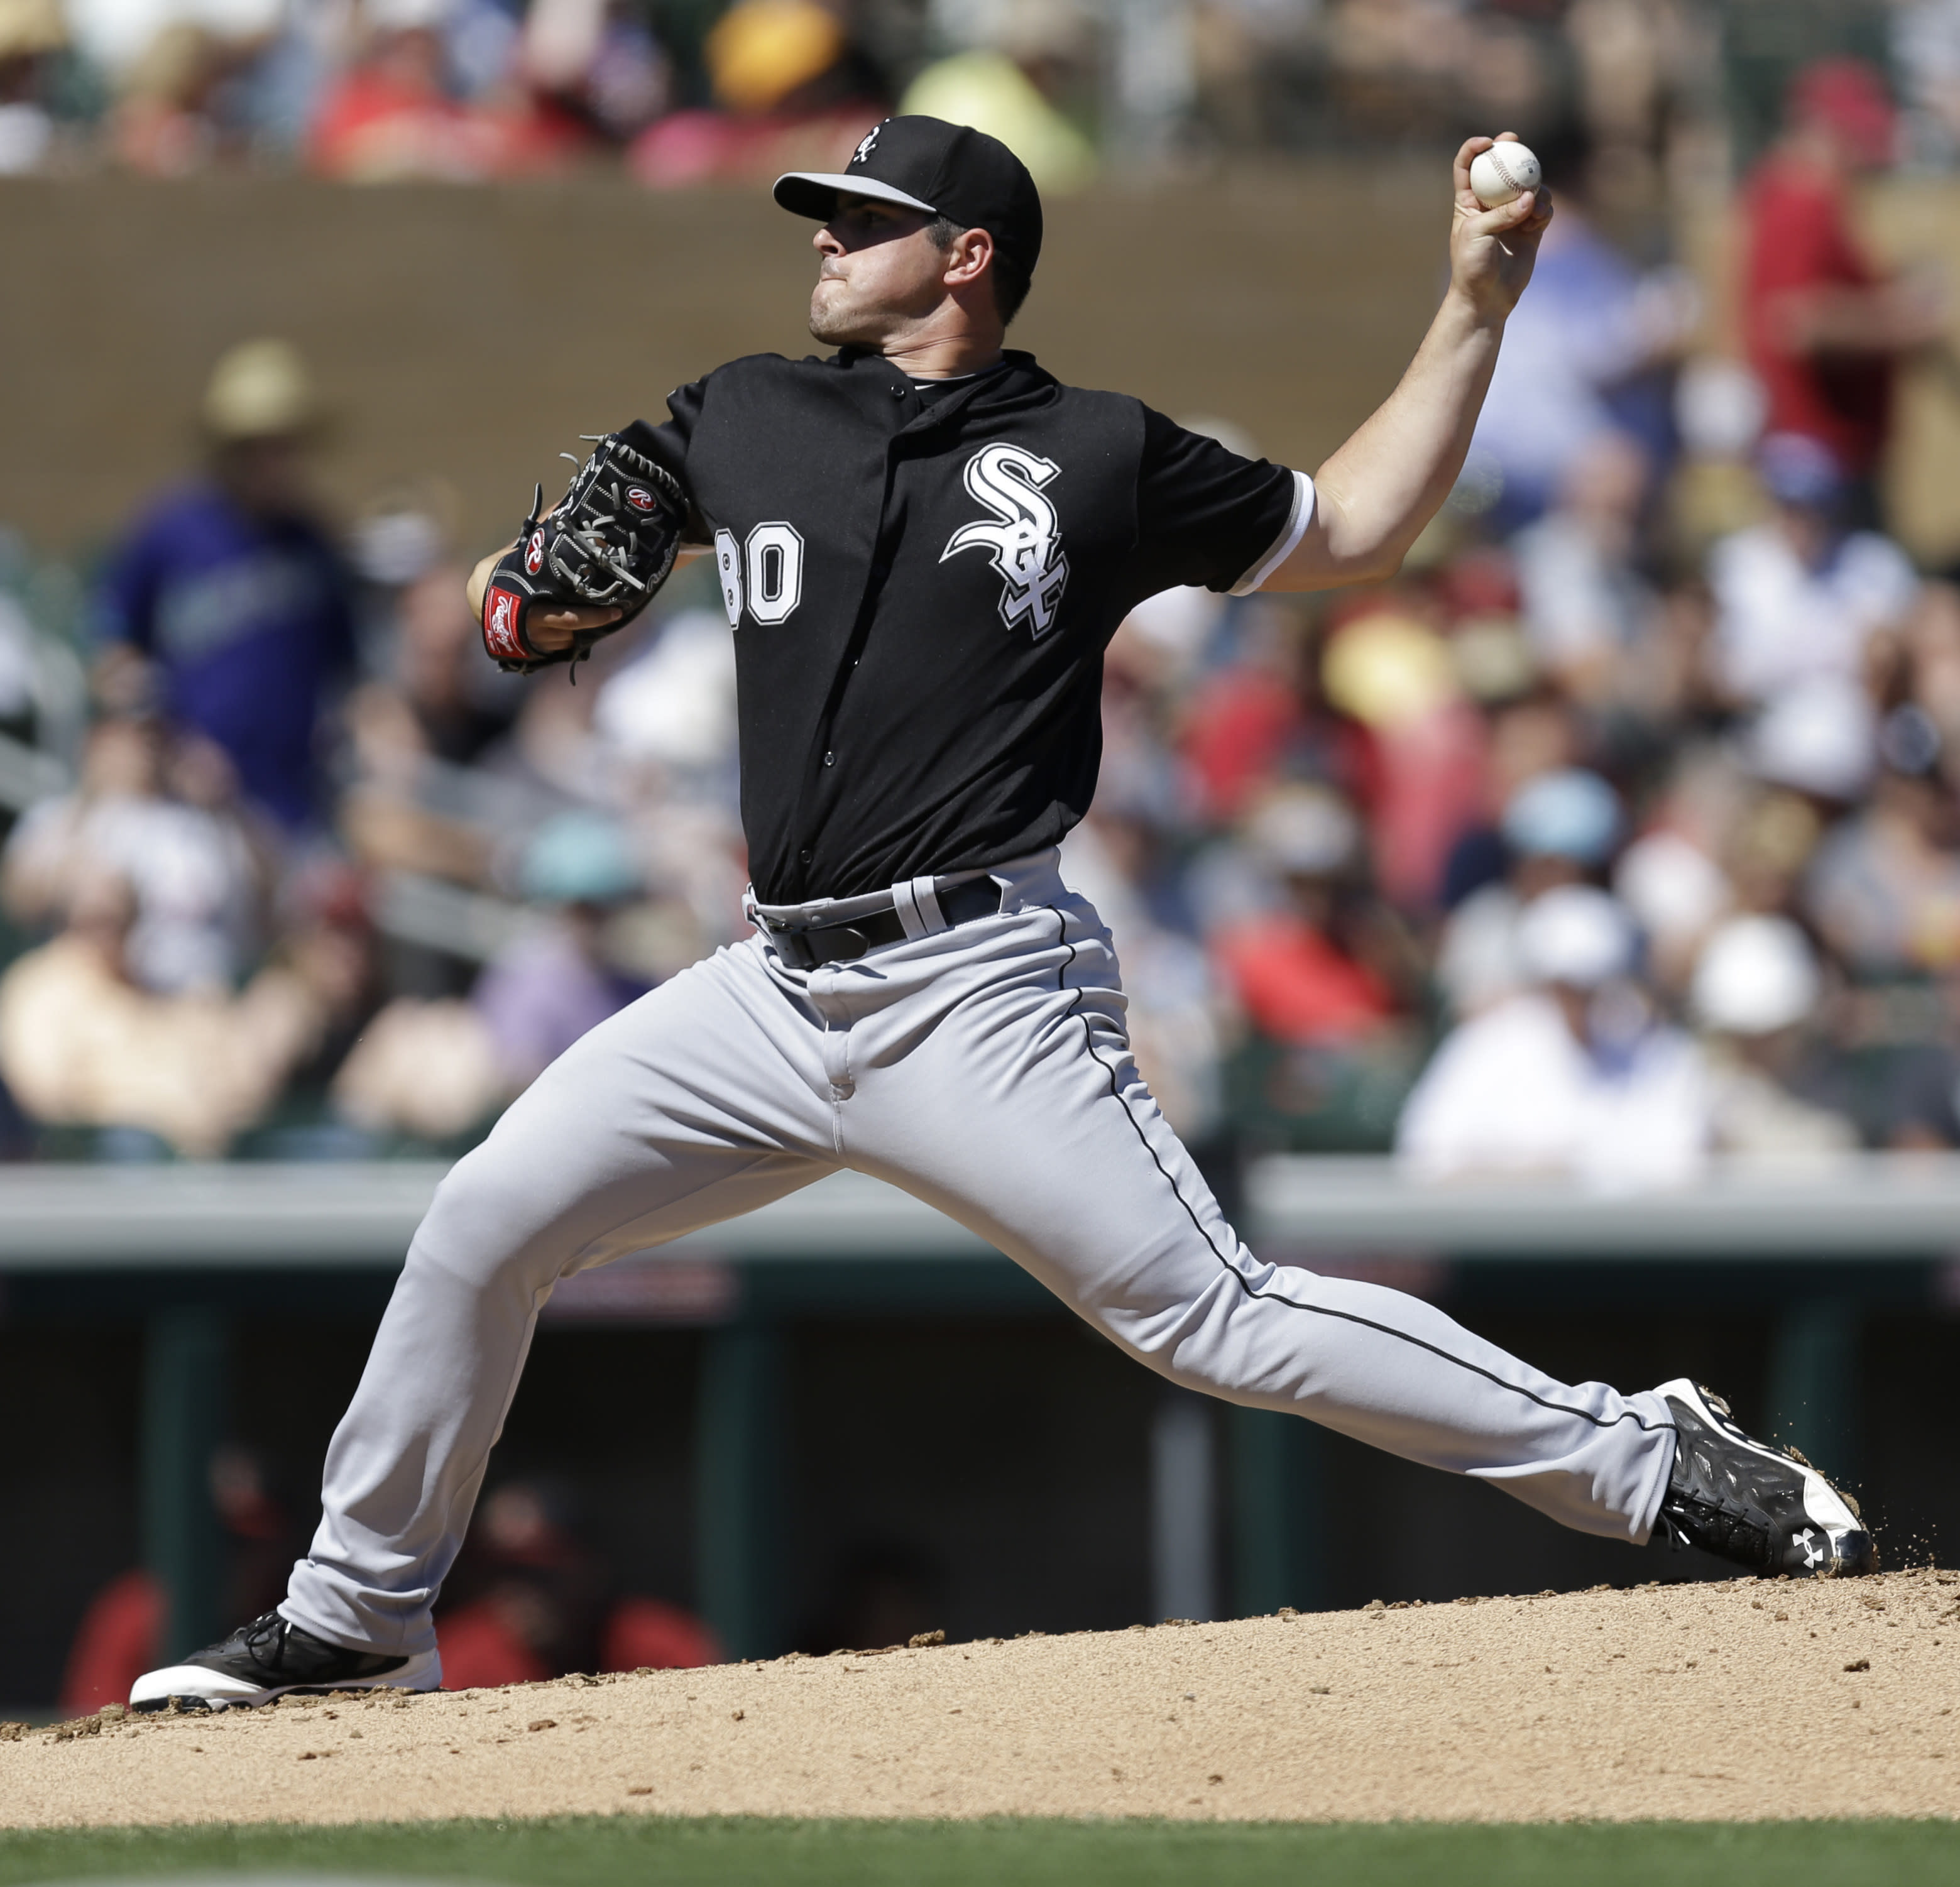 White Sox promote LHP Rodon from minors